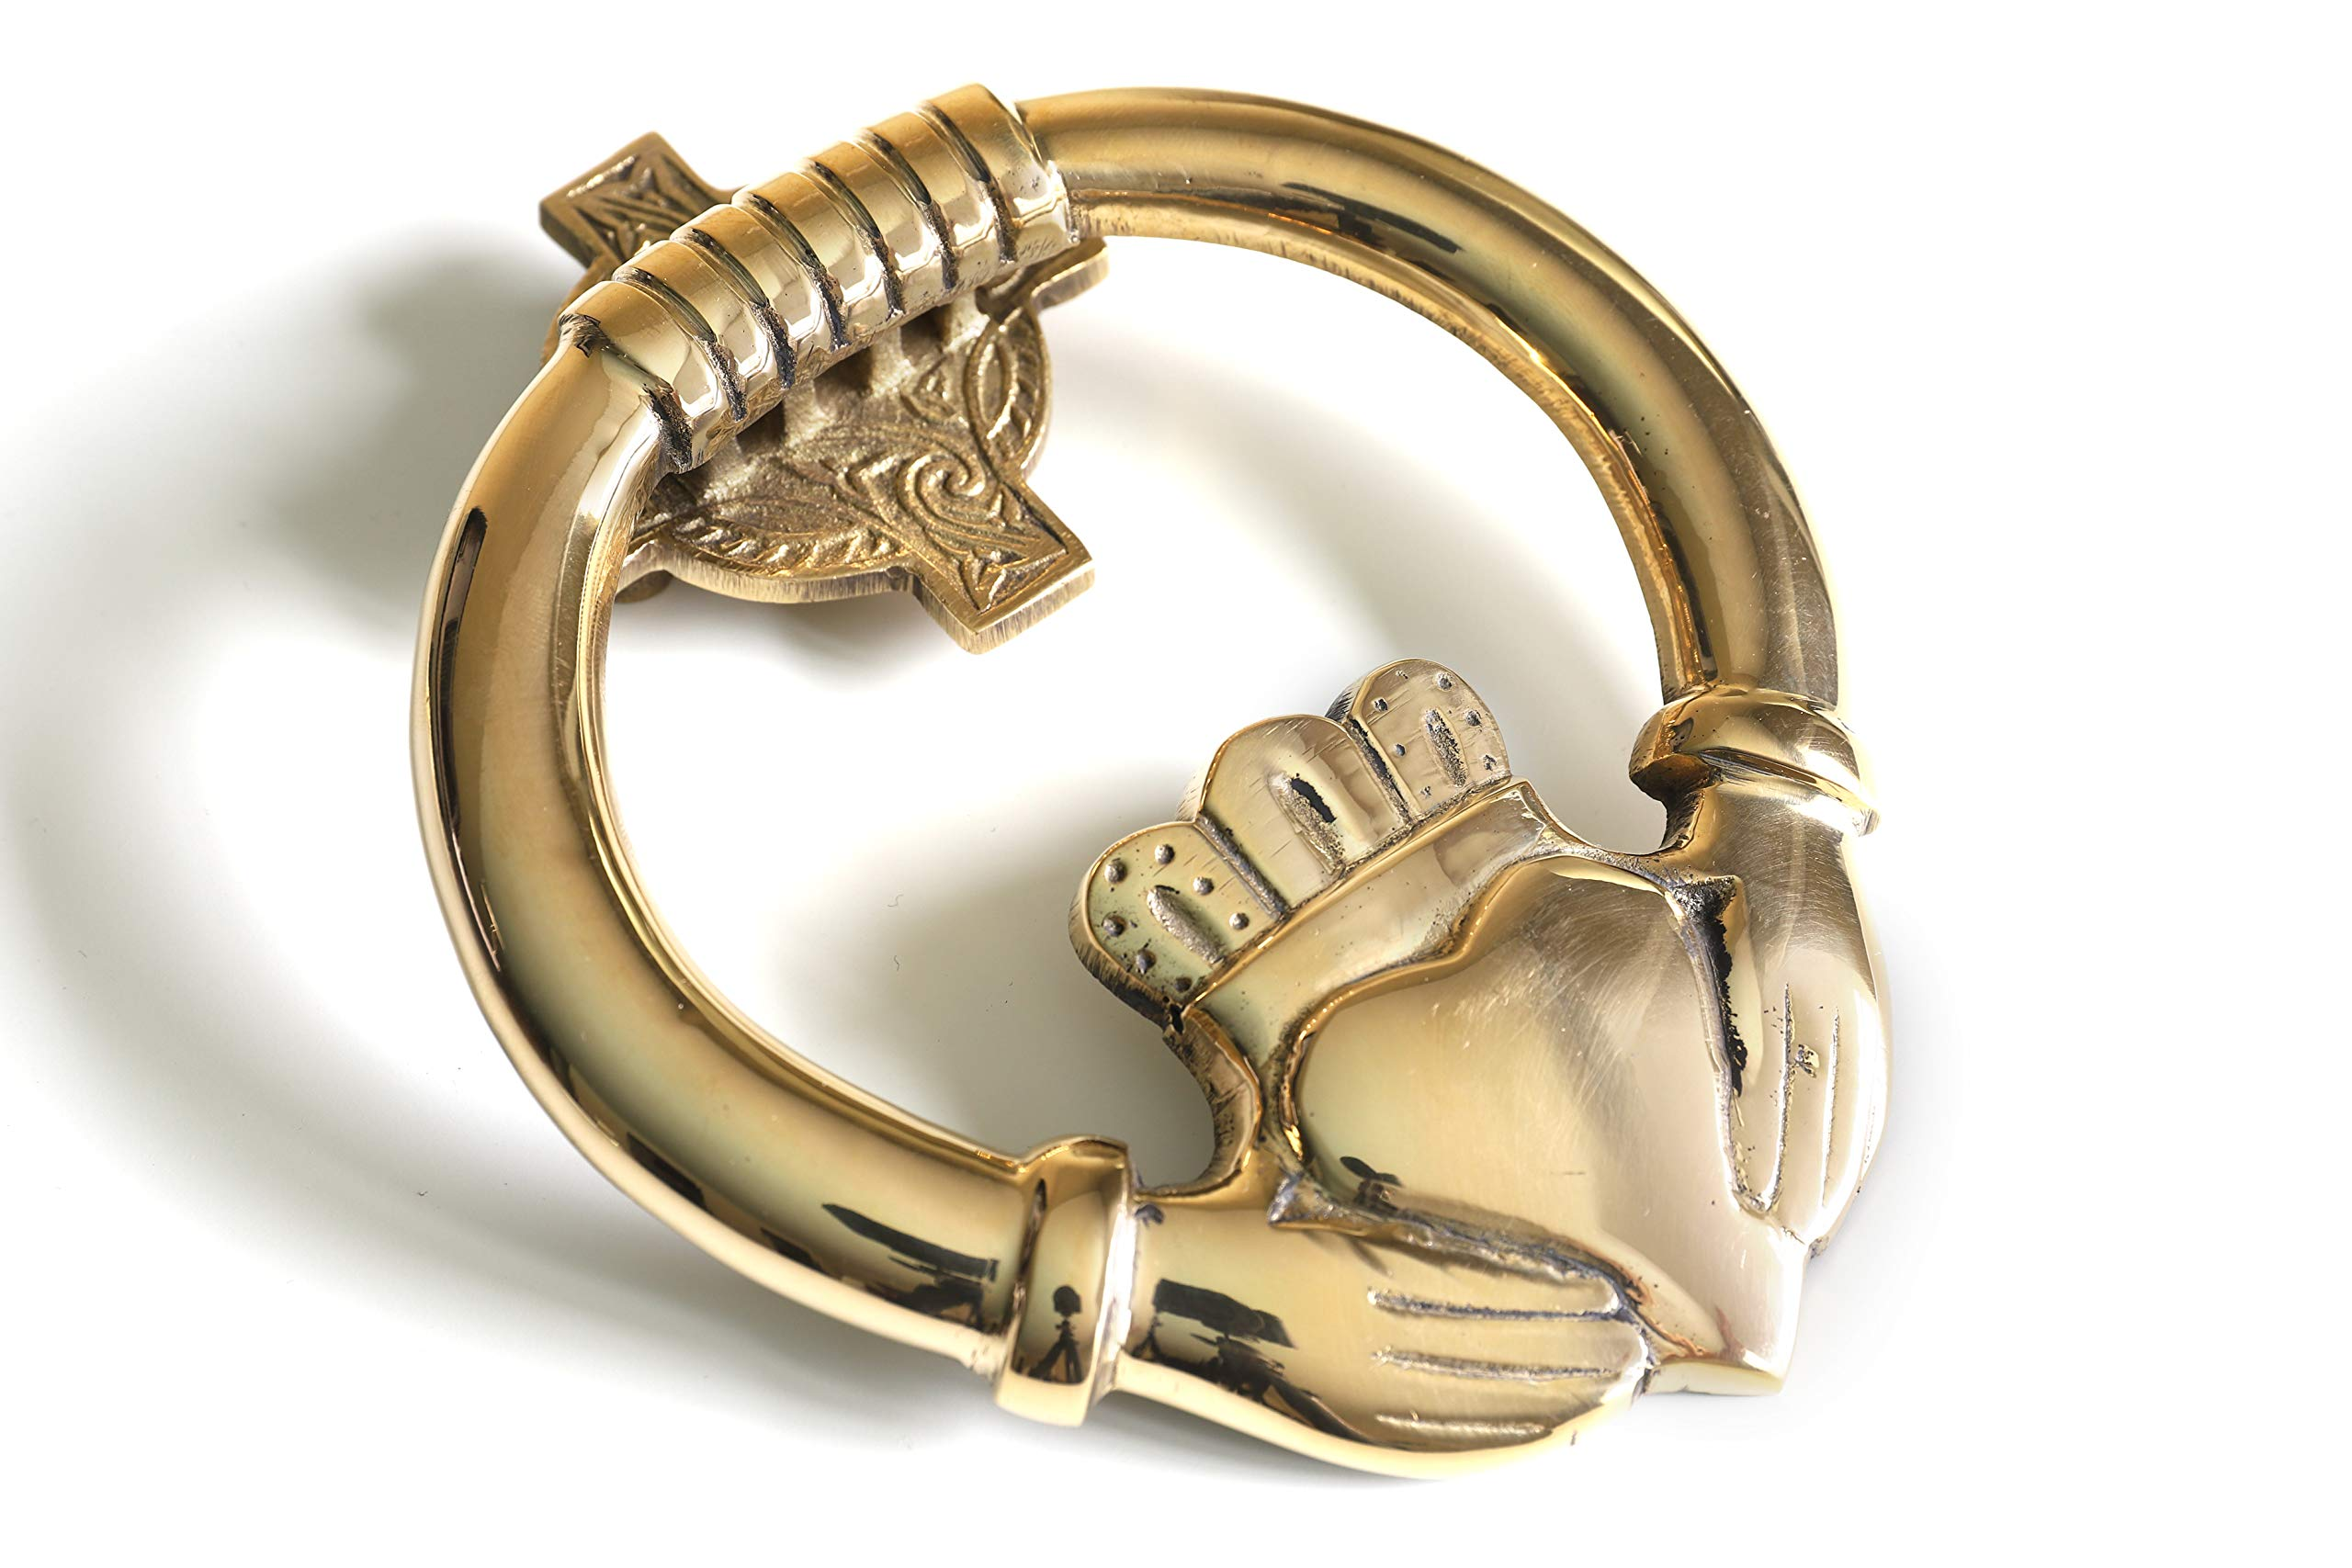 Claddagh Door Knocker 7'' x 5 ½'' Large Durable Solid Brass Heavy All Fittings Supplied Designed in Ireland